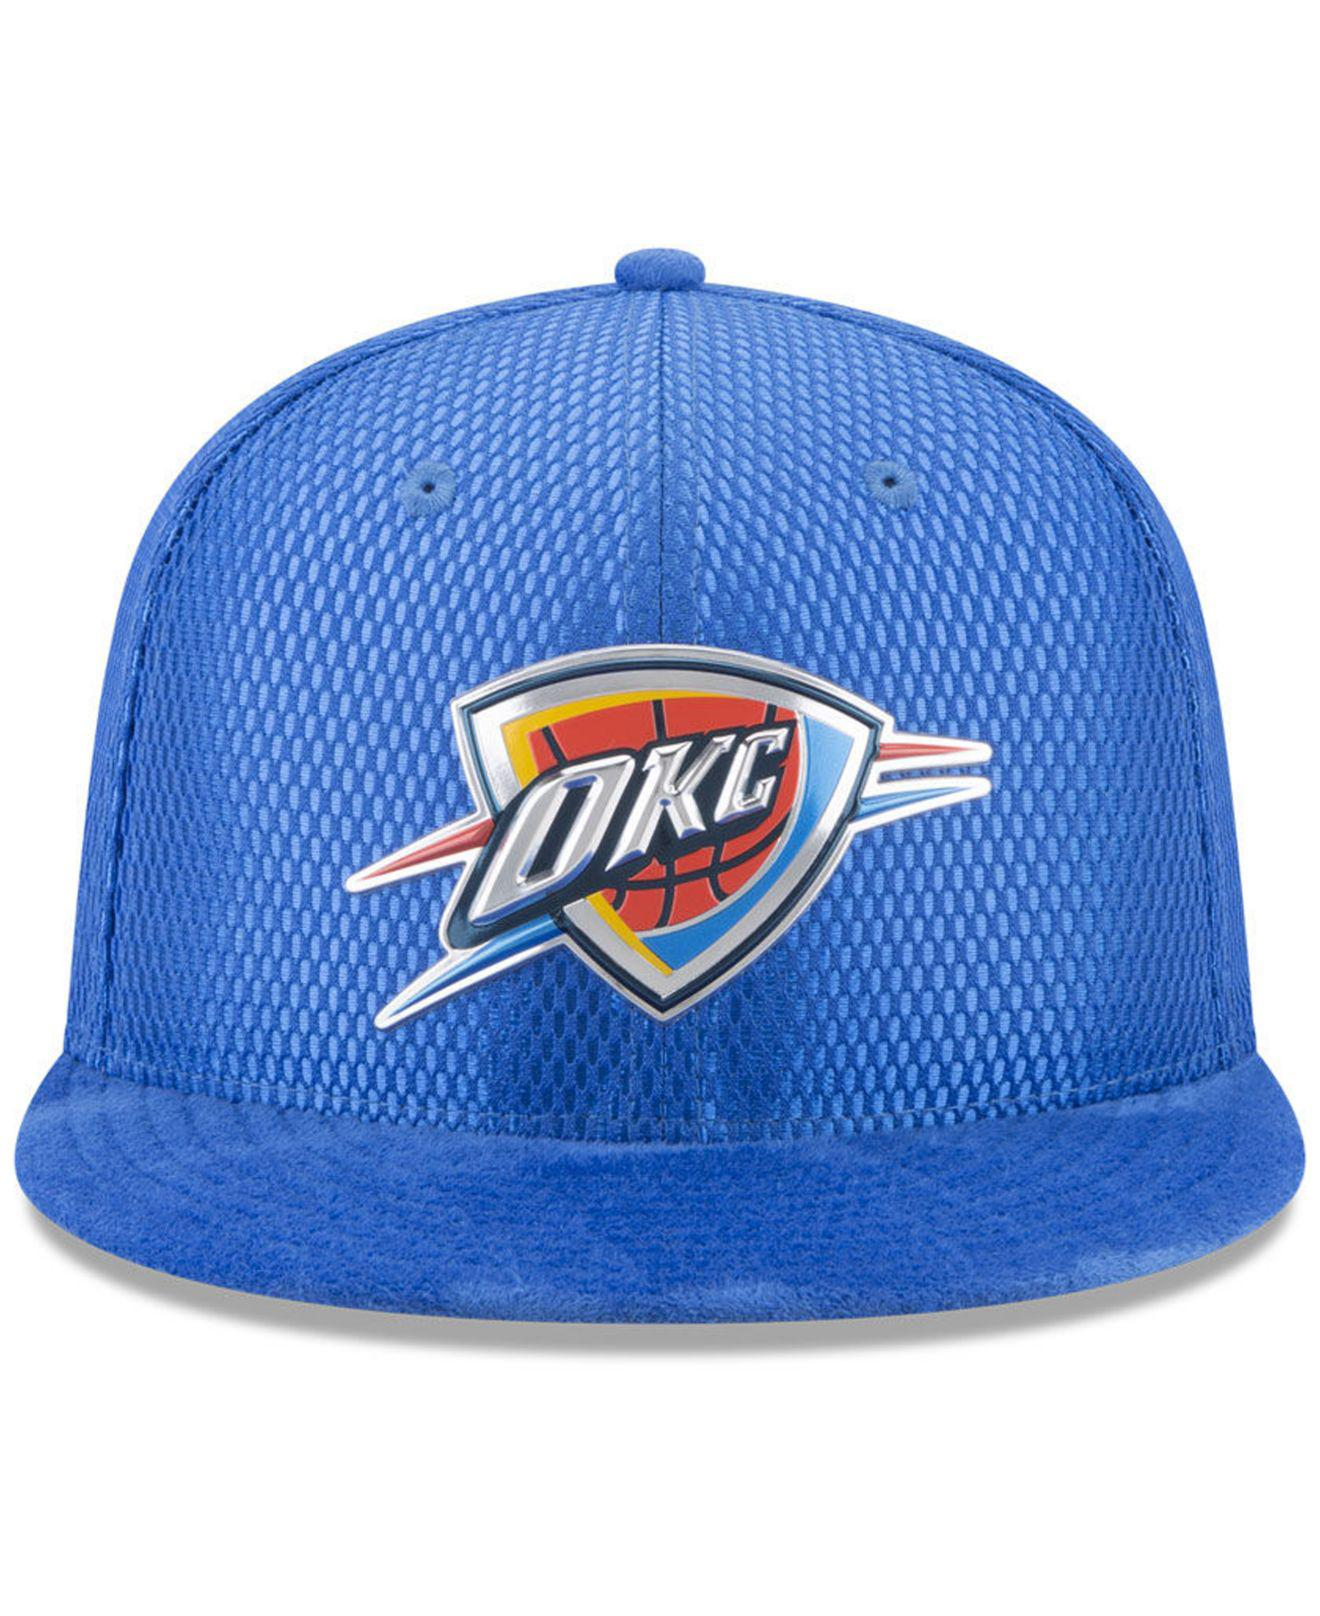 new style fd70a 6b72c usa ktz oklahoma city thunder city on court 59fifty fitted cap lyst 70d87  d8aa5  best price gallery. previously sold at macys mens baseball caps  7cc50 f5c44